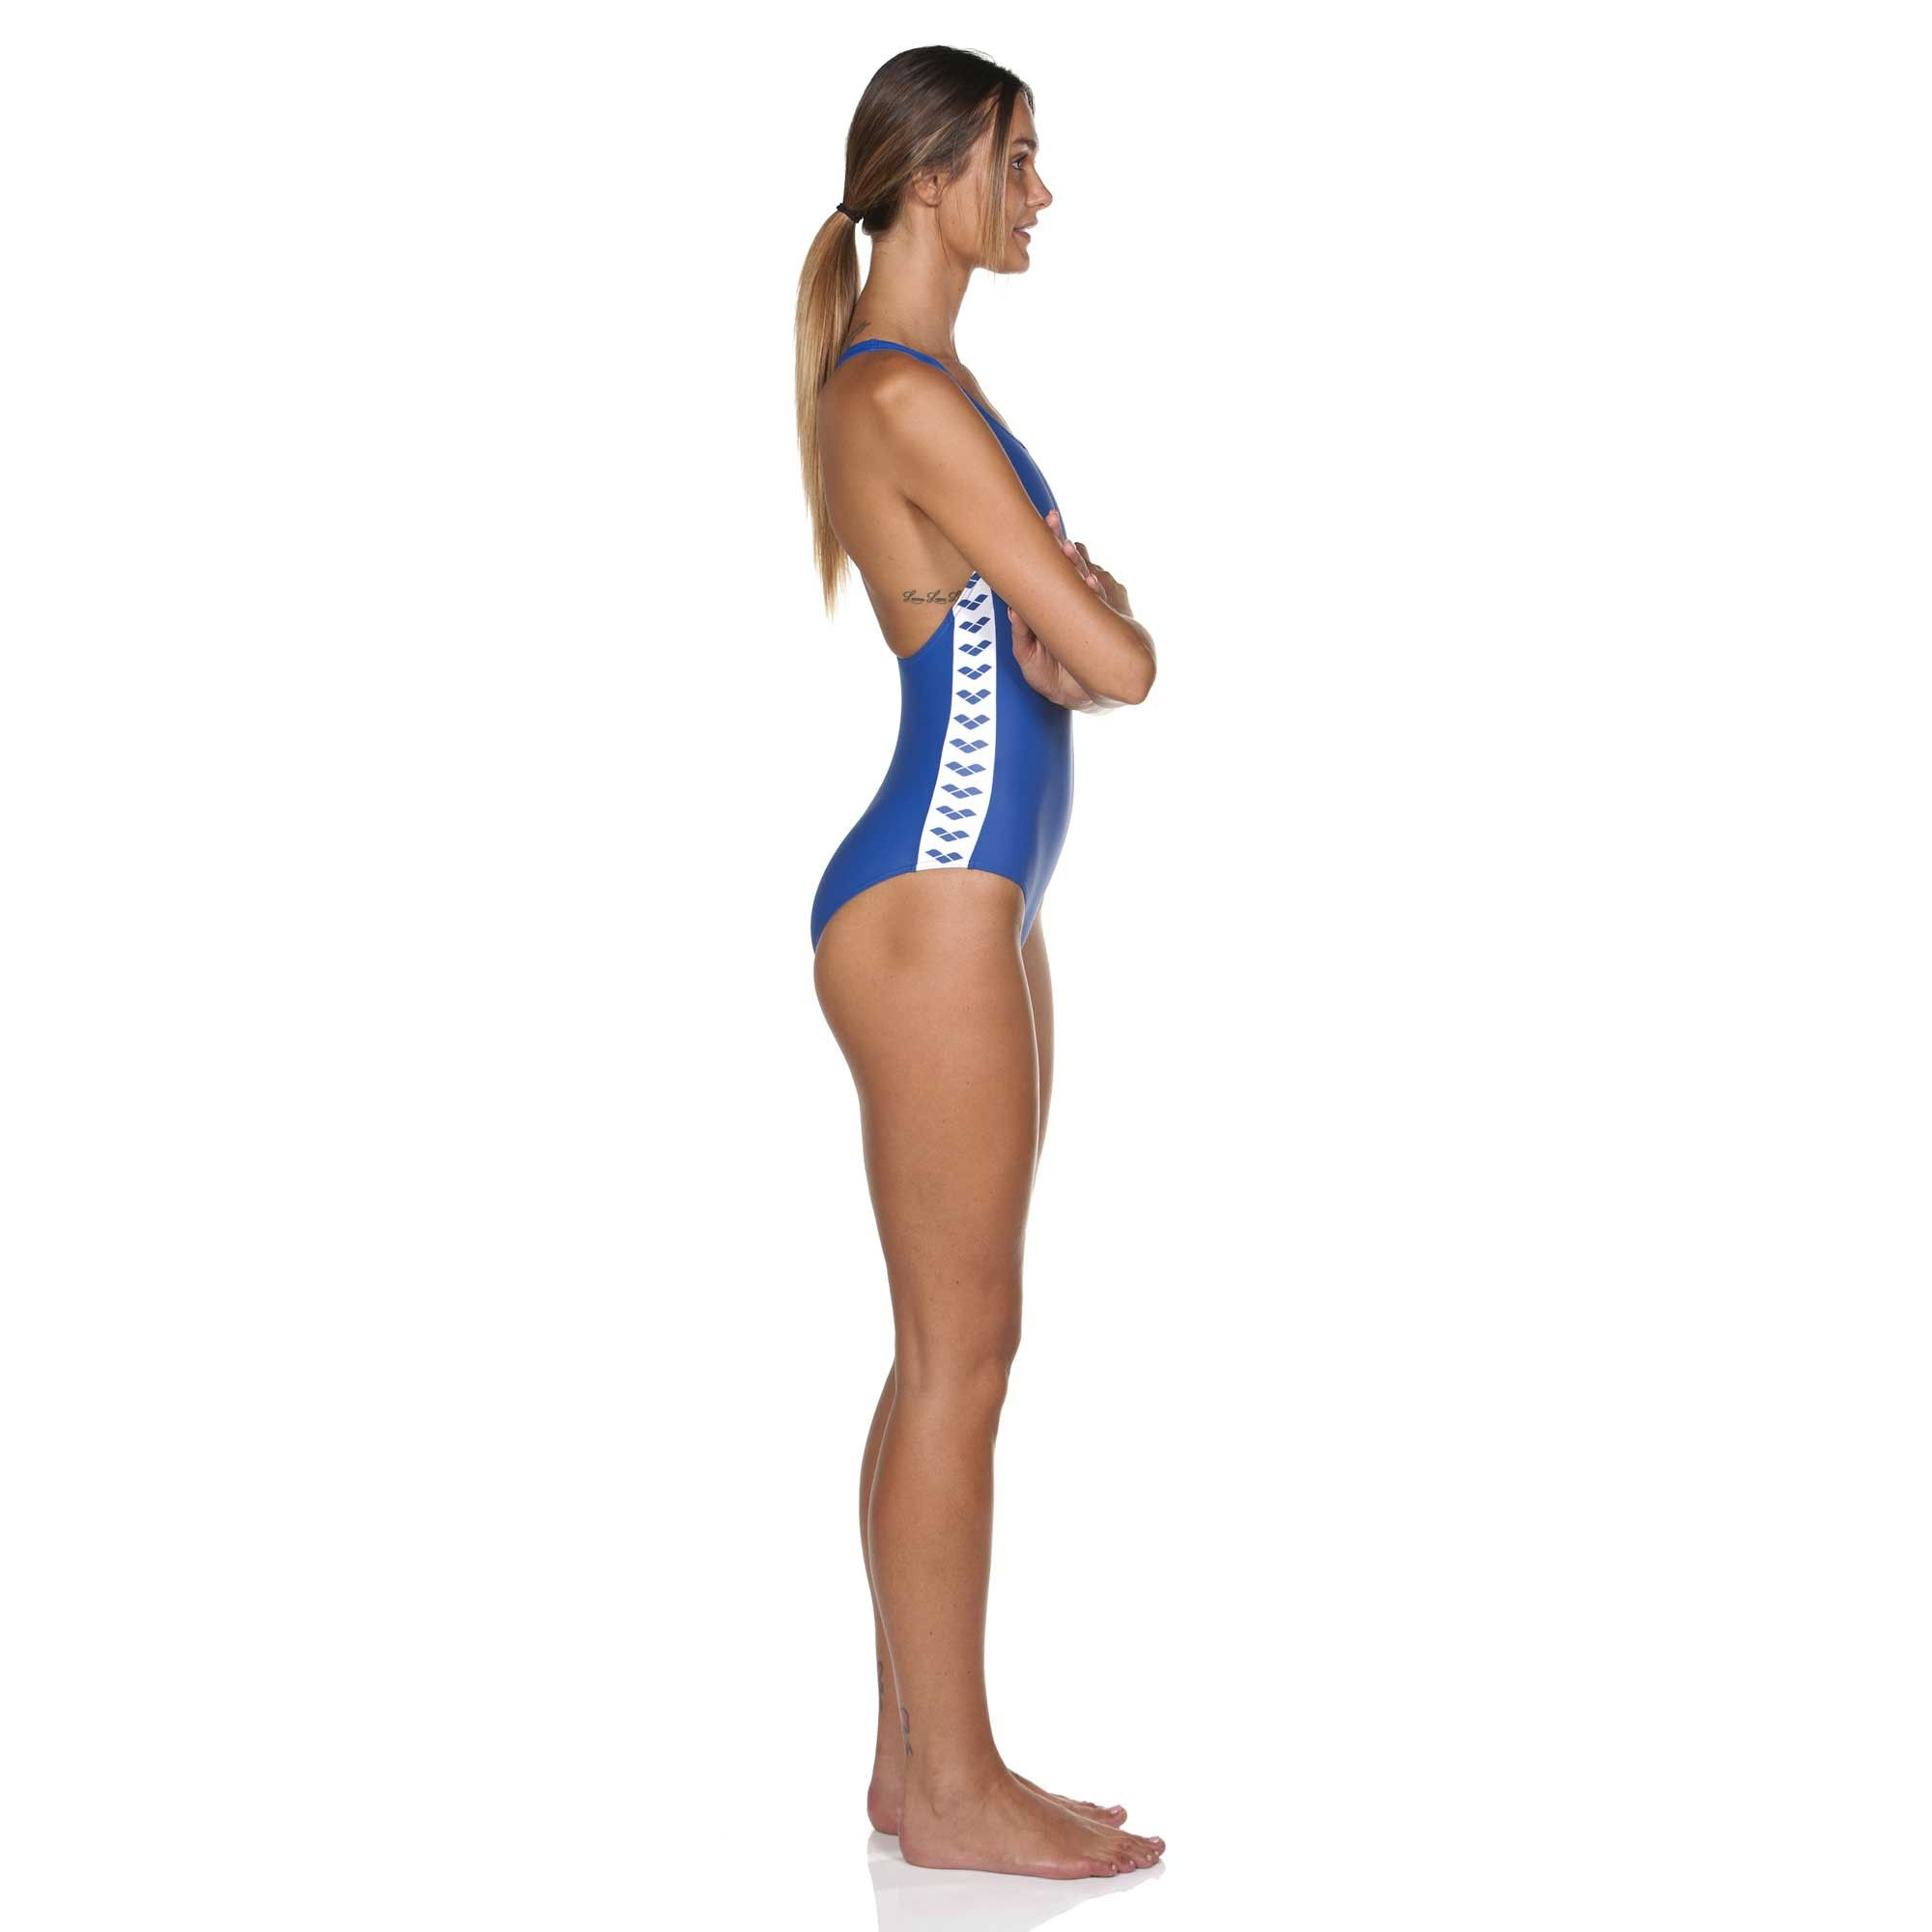 16780ac50b382 Women's Team Fit One Piece | arena Training Swimsuits | Swimwear ...